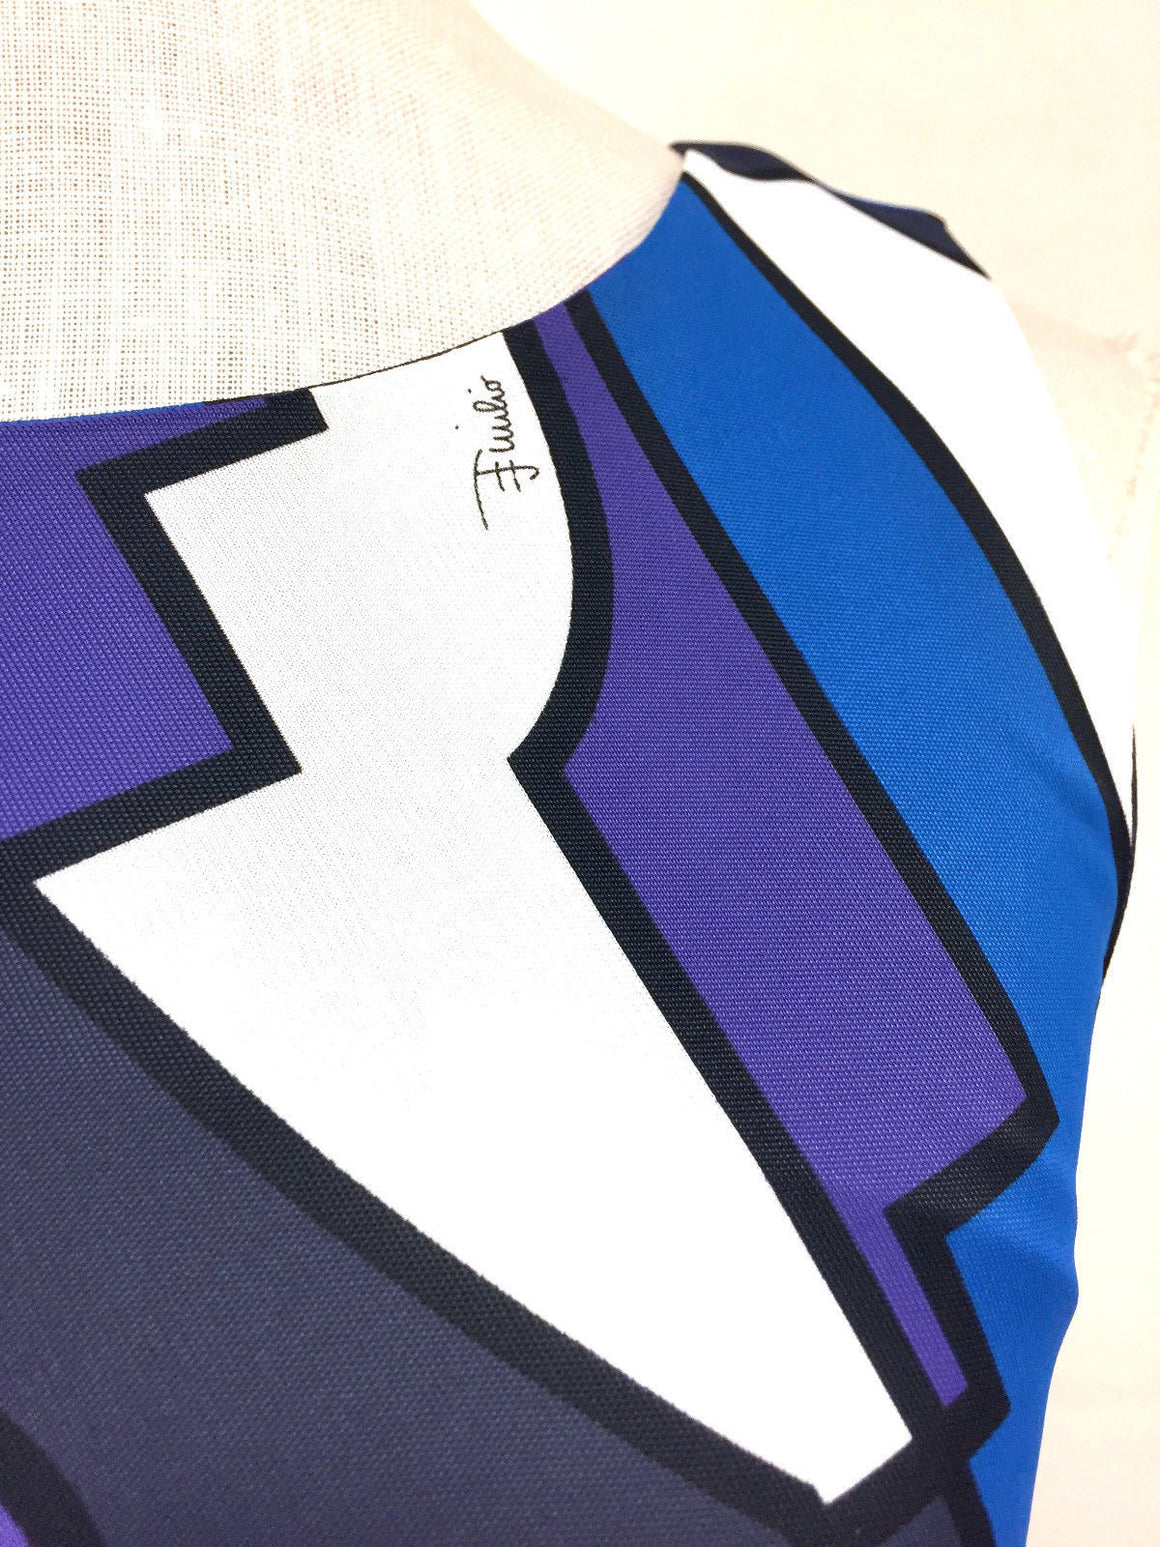 bisbiz.com EMILIO PUCCI Purple/Royal-Blue/White Large Geo Print Viscose Sleeveless Dress Size: IT38/US4=XS - Bis Luxury Resale